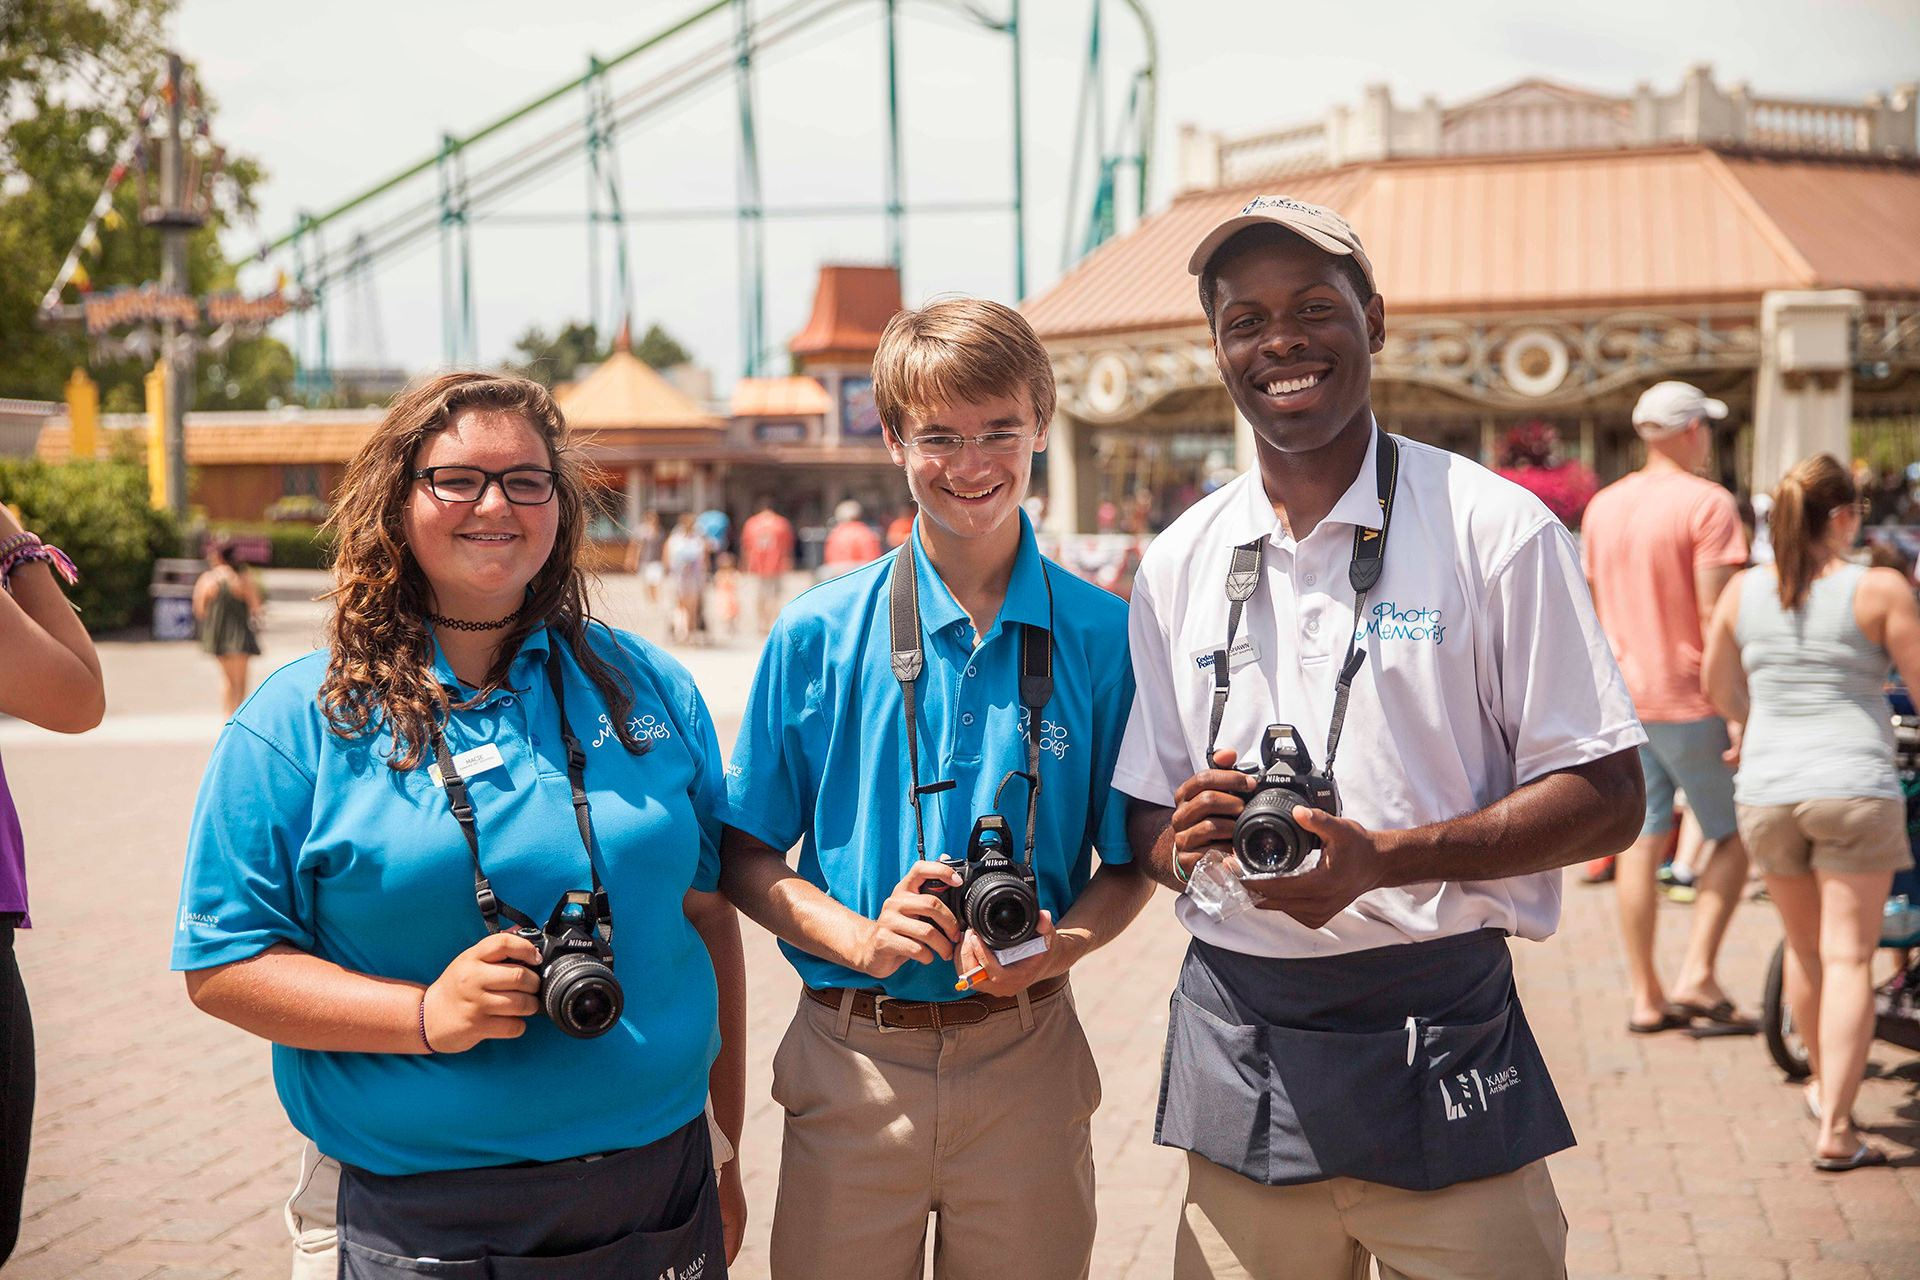 Students holding cameras at cedar point